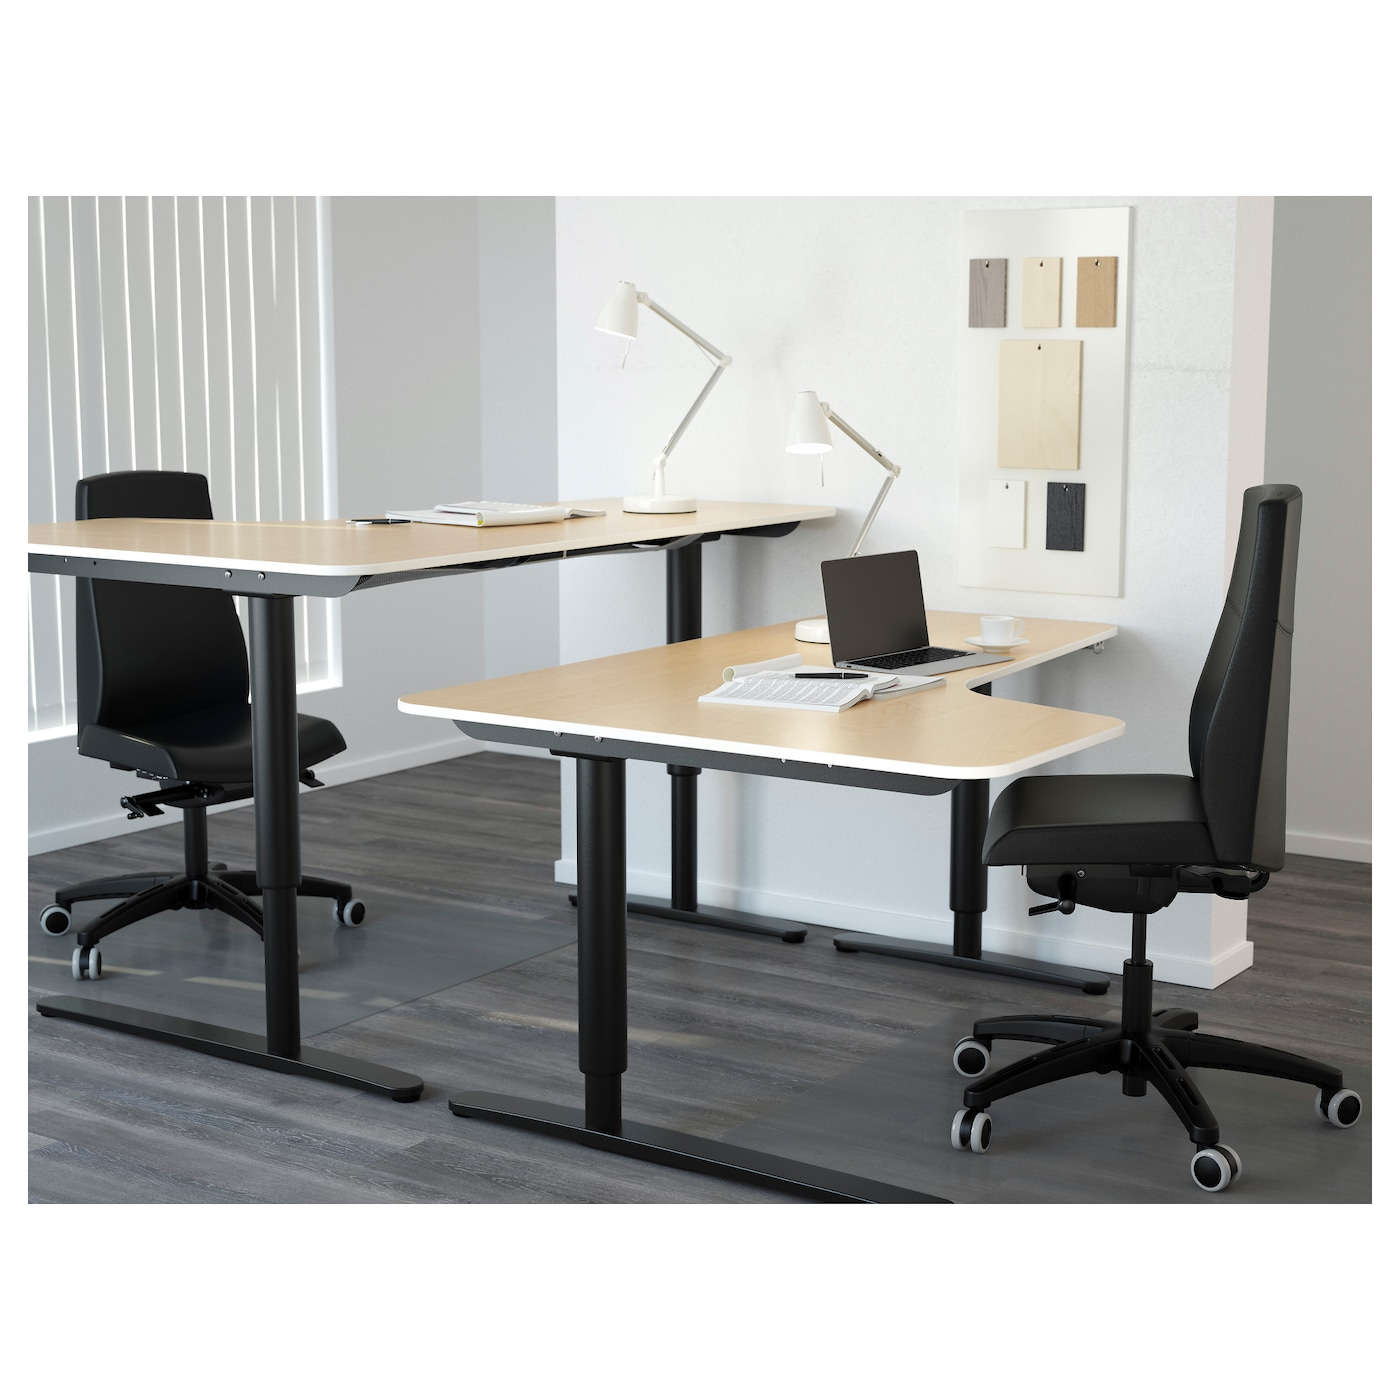 design quadrossd quadro en from h architonic product desk sit by desks individual stand cube